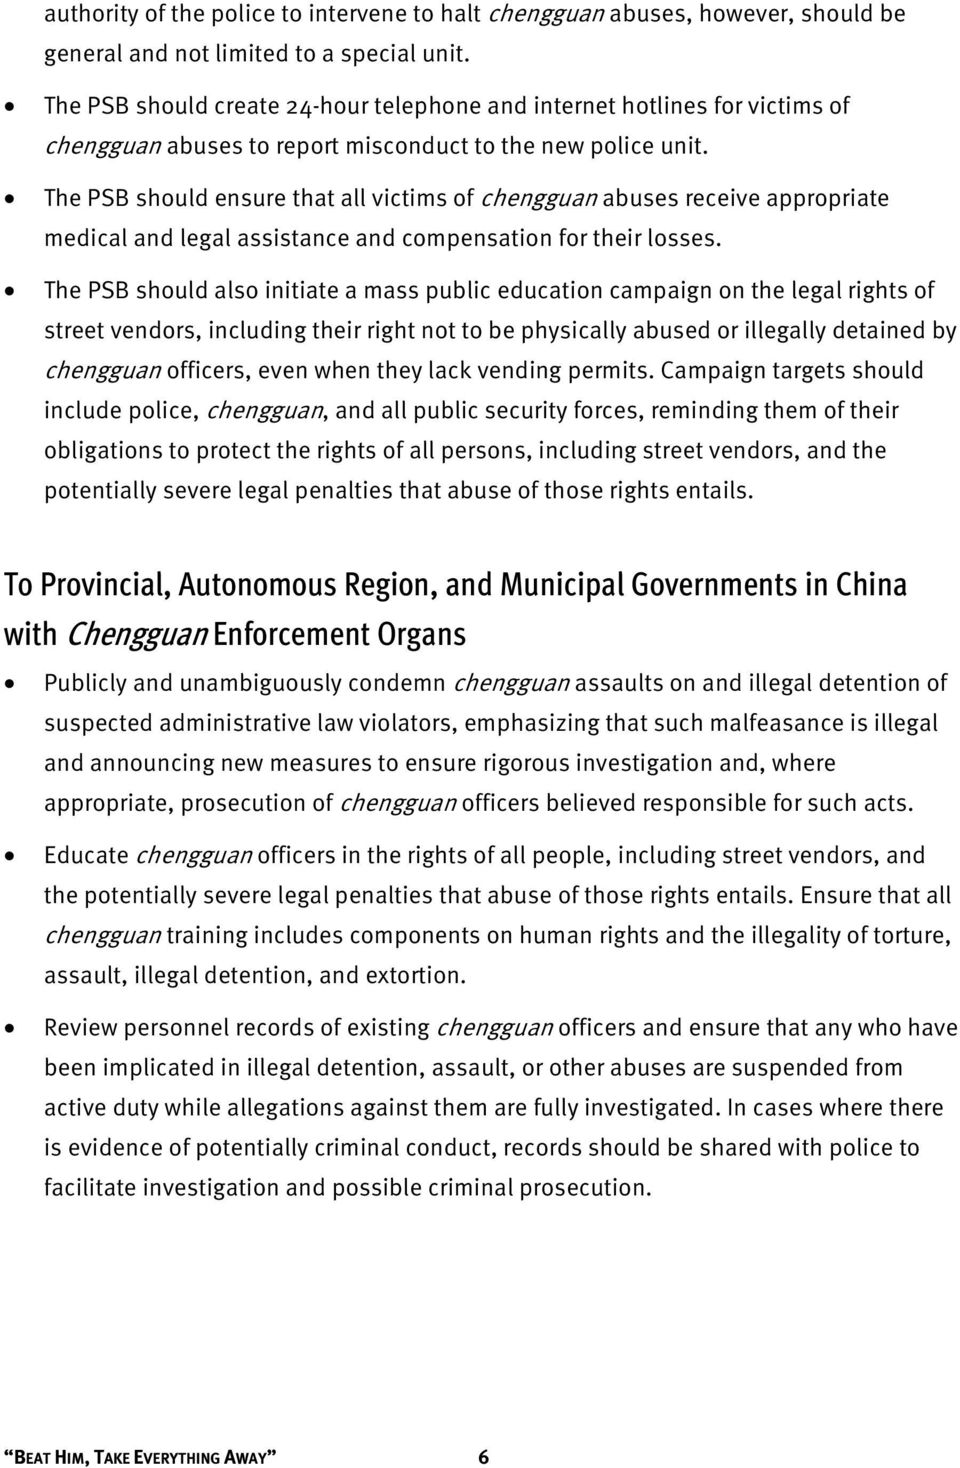 The PSB should ensure that all victims of chengguan abuses receive appropriate medical and legal assistance and compensation for their losses.